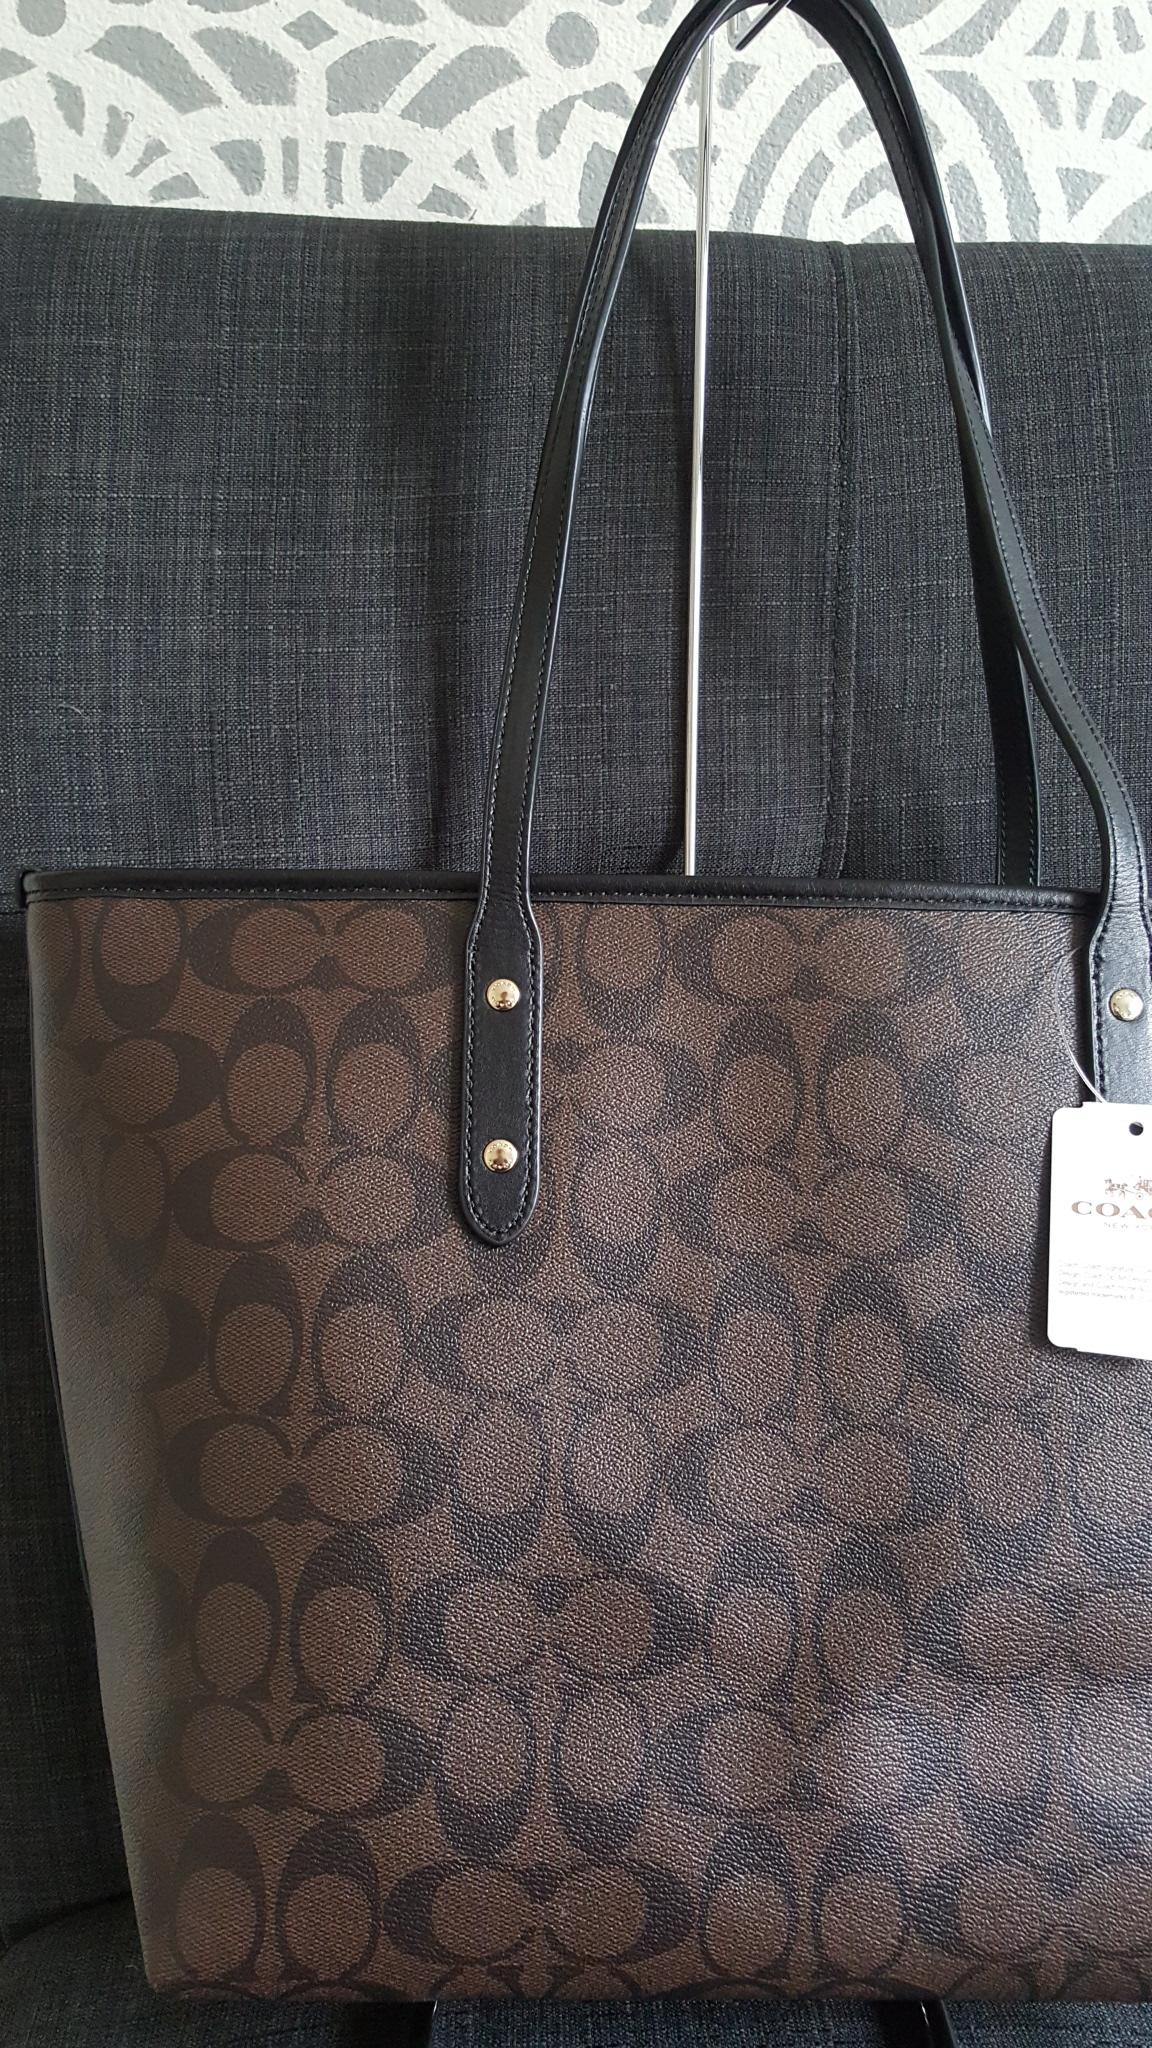 78a6832c273 hot coach black and brown tote 624ef 42682